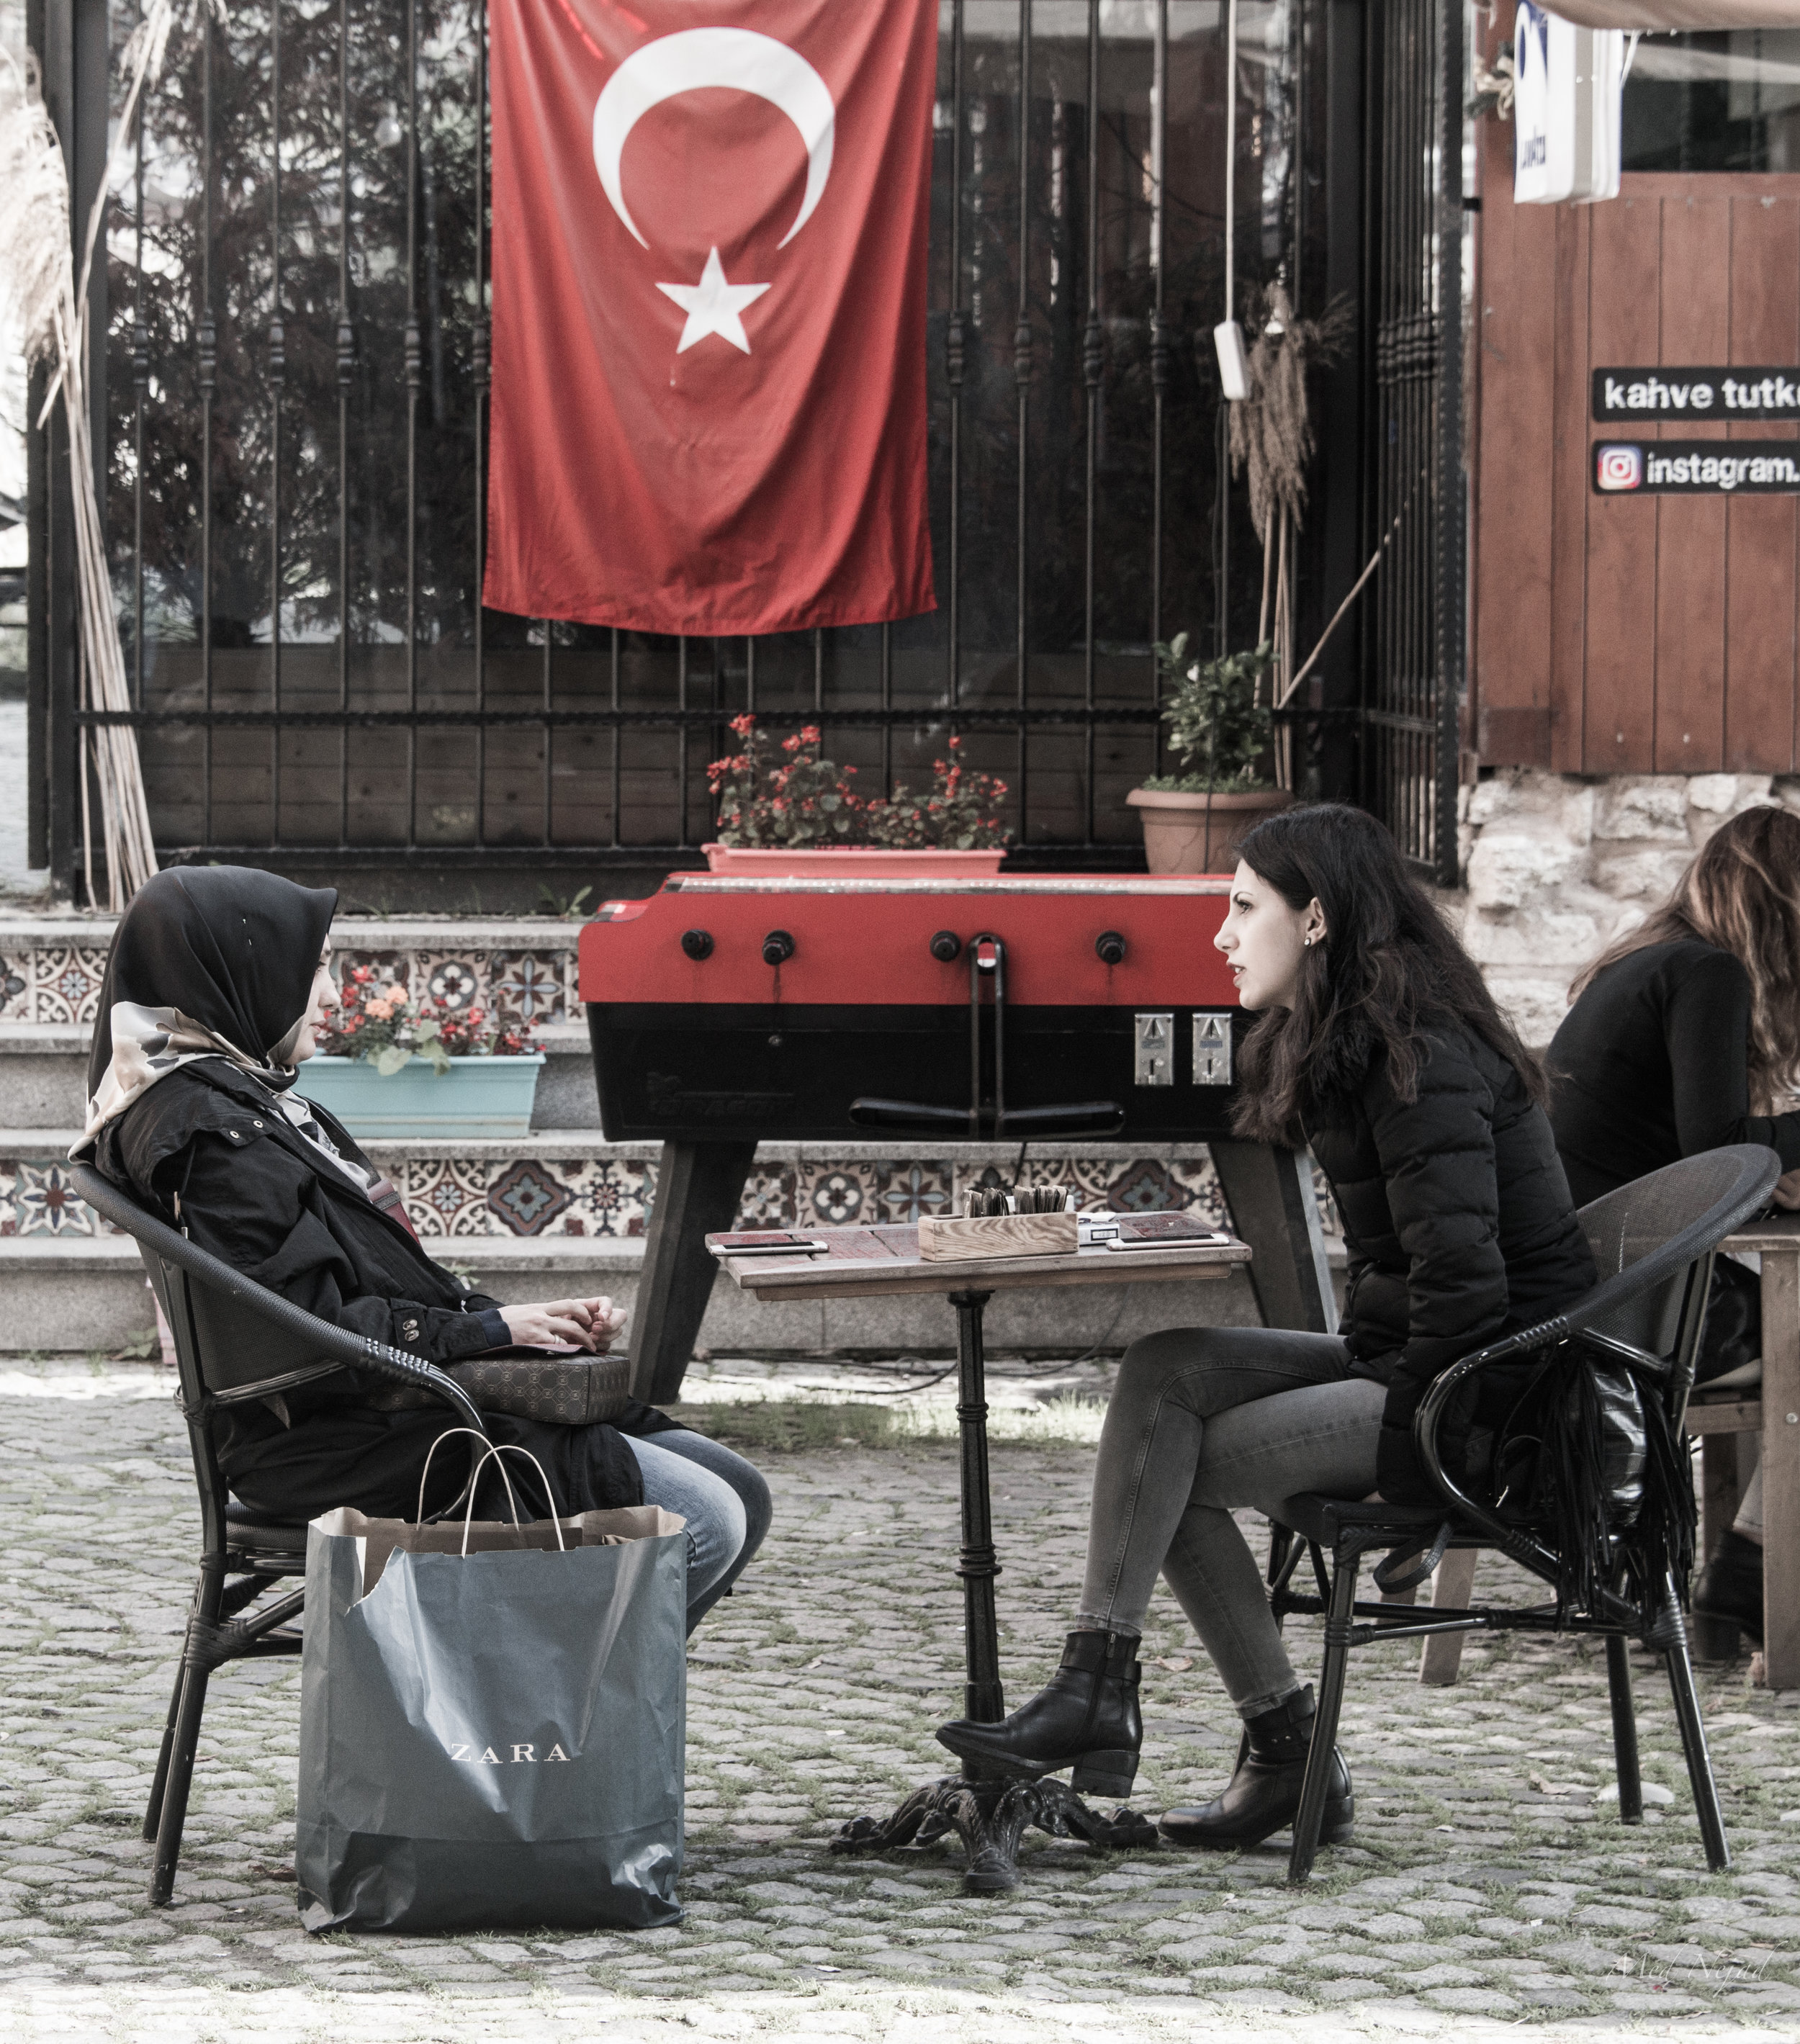 Two women relaxing at an outdoor cafe in Lalali district in Istanbul